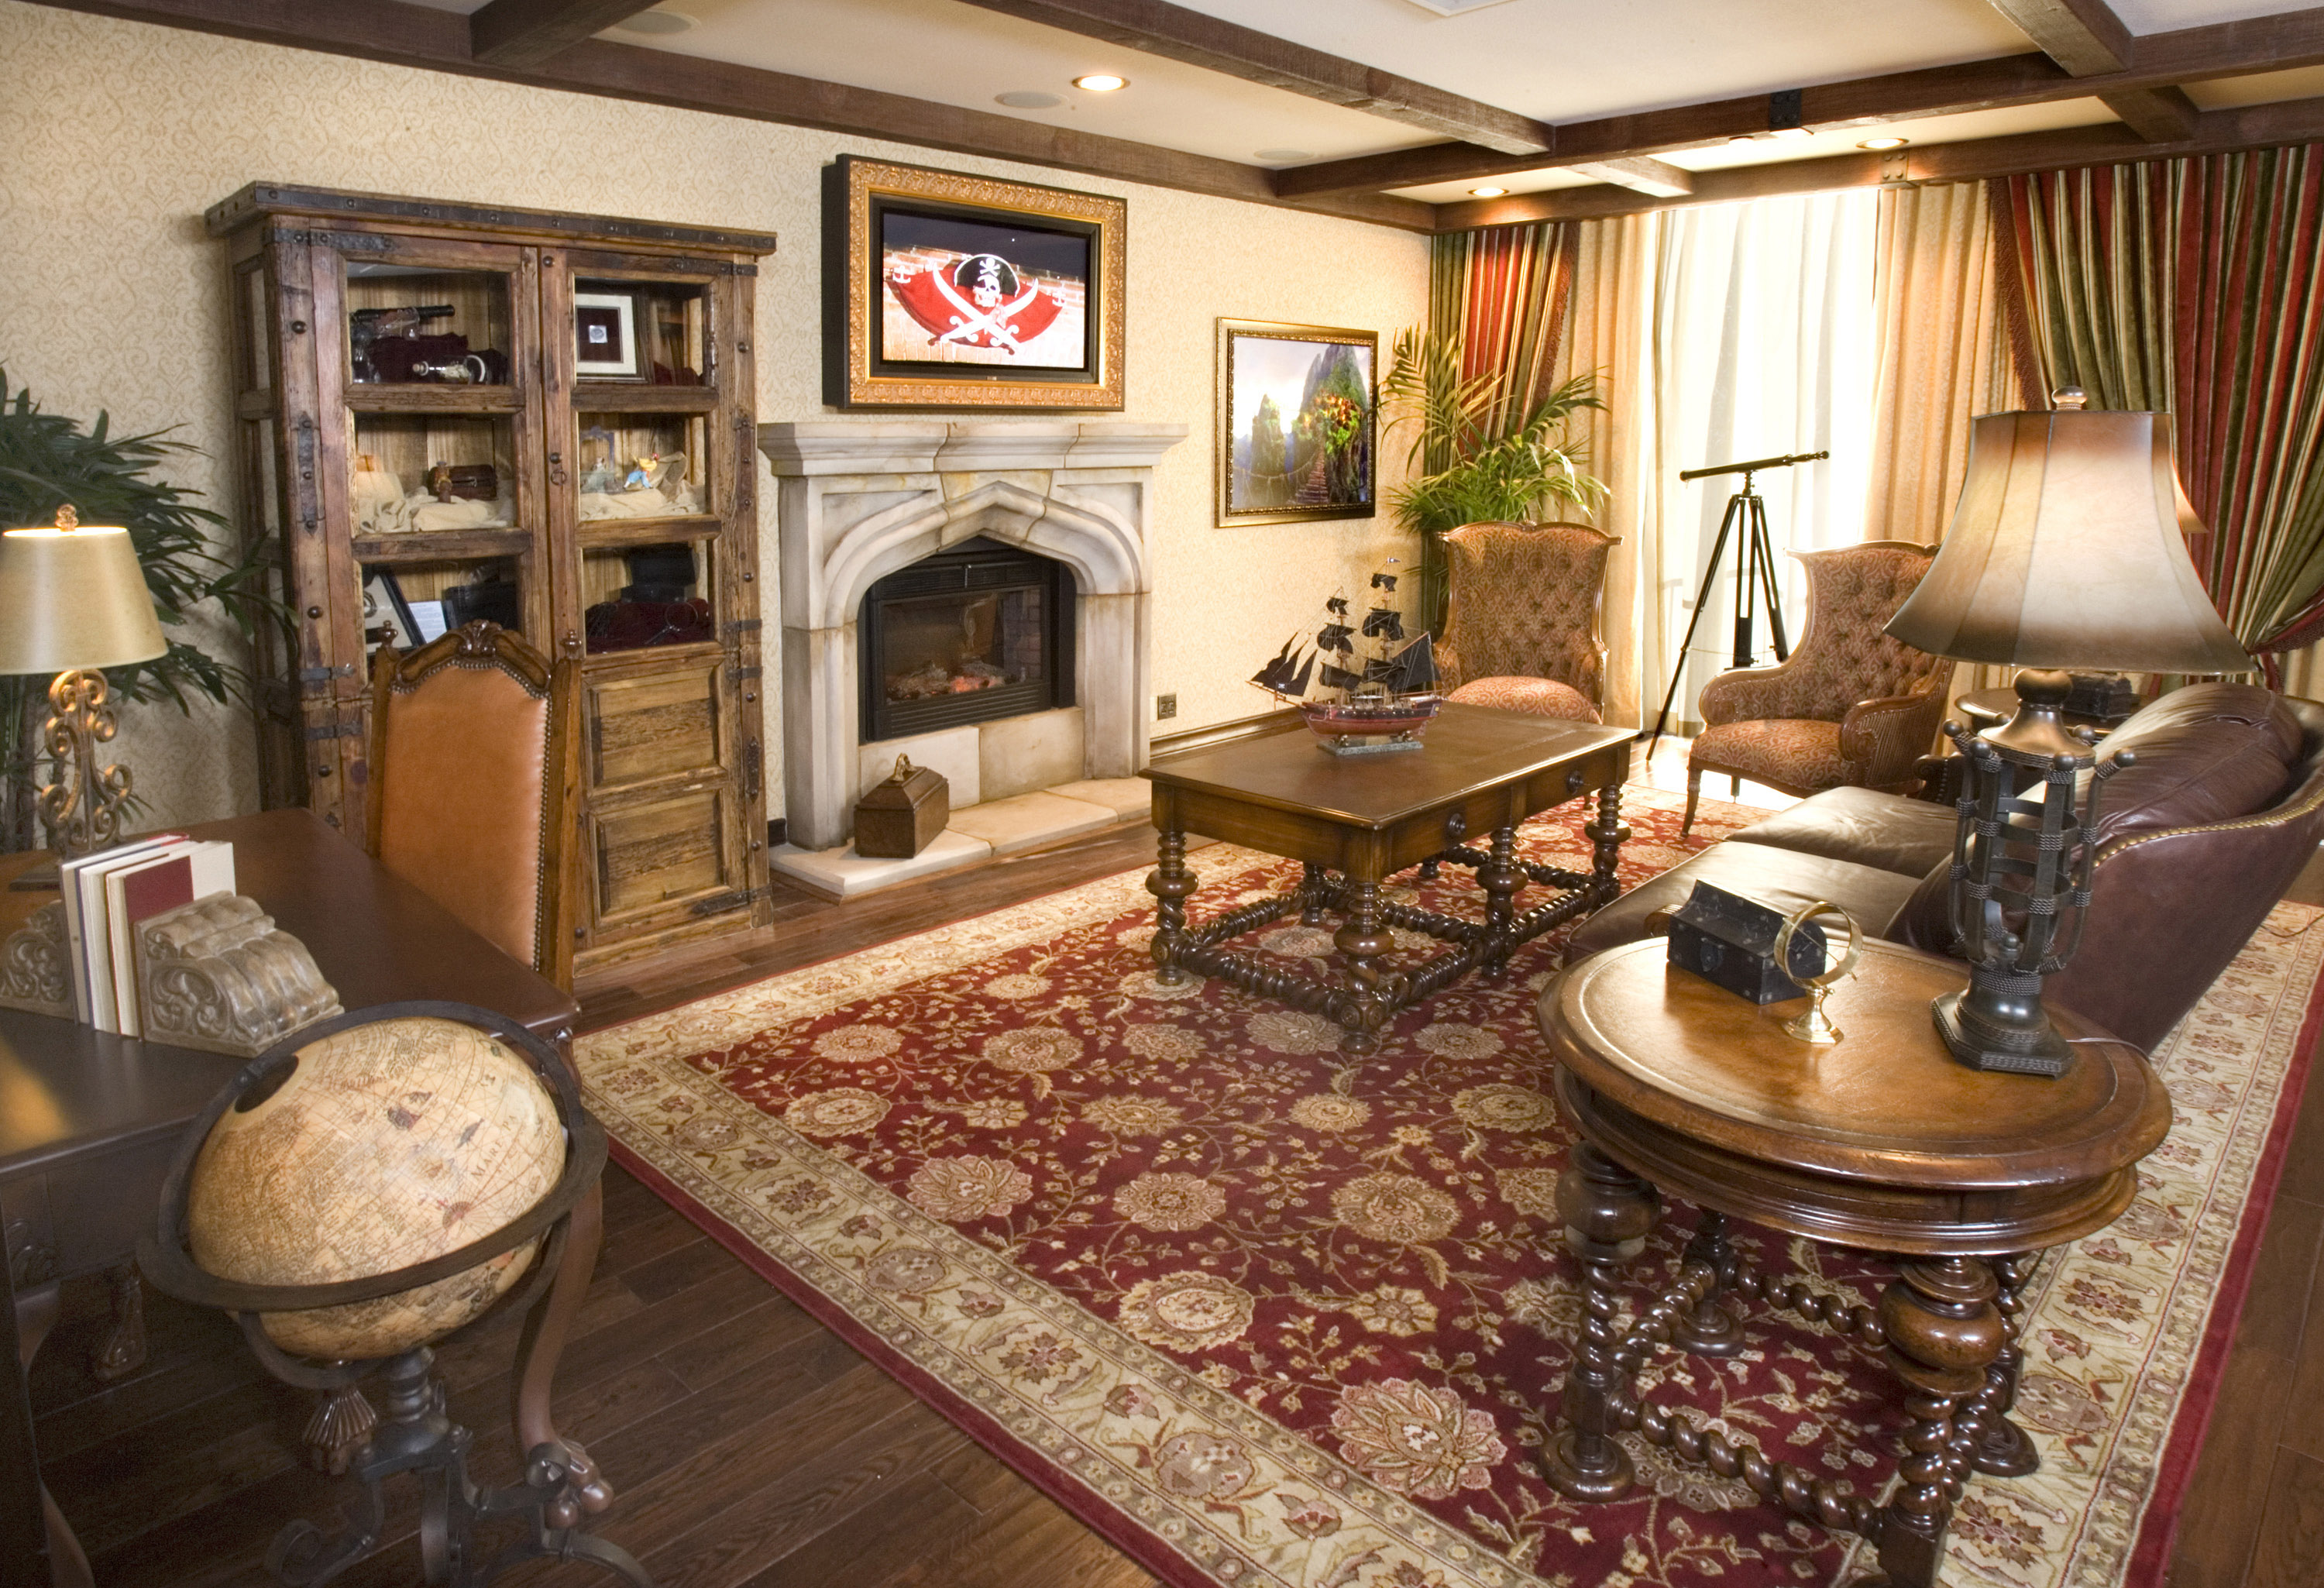 Your Inside Look At Disneylands Themed Suites For Super Fans Los Angeles Magazine